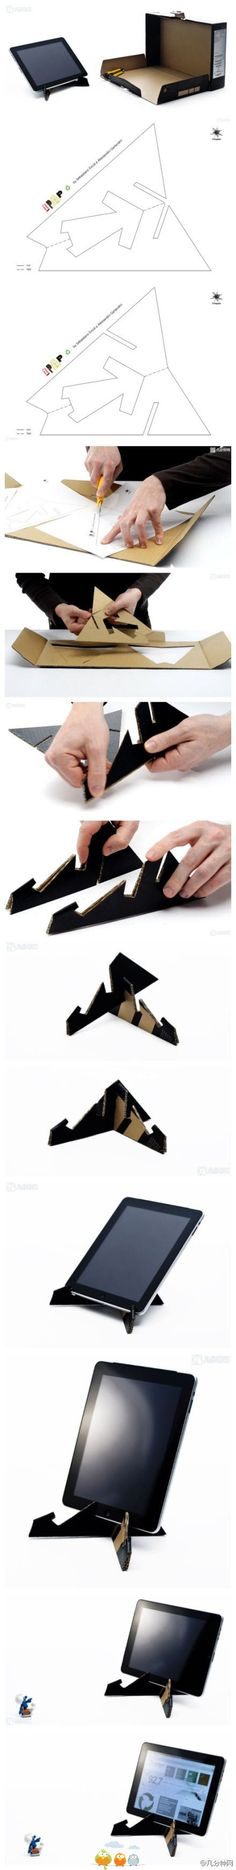 DIY Cardboard Tablet Stand is part of Cardboard crafts Tutorials Making a tablet stand can be really nice since you will always need - Cardboard Furniture, Cardboard Crafts, Cardboard Boxes, Diy Projects To Try, Craft Projects, Diy Para A Casa, Home Crafts, Diy And Crafts, Diy Paper